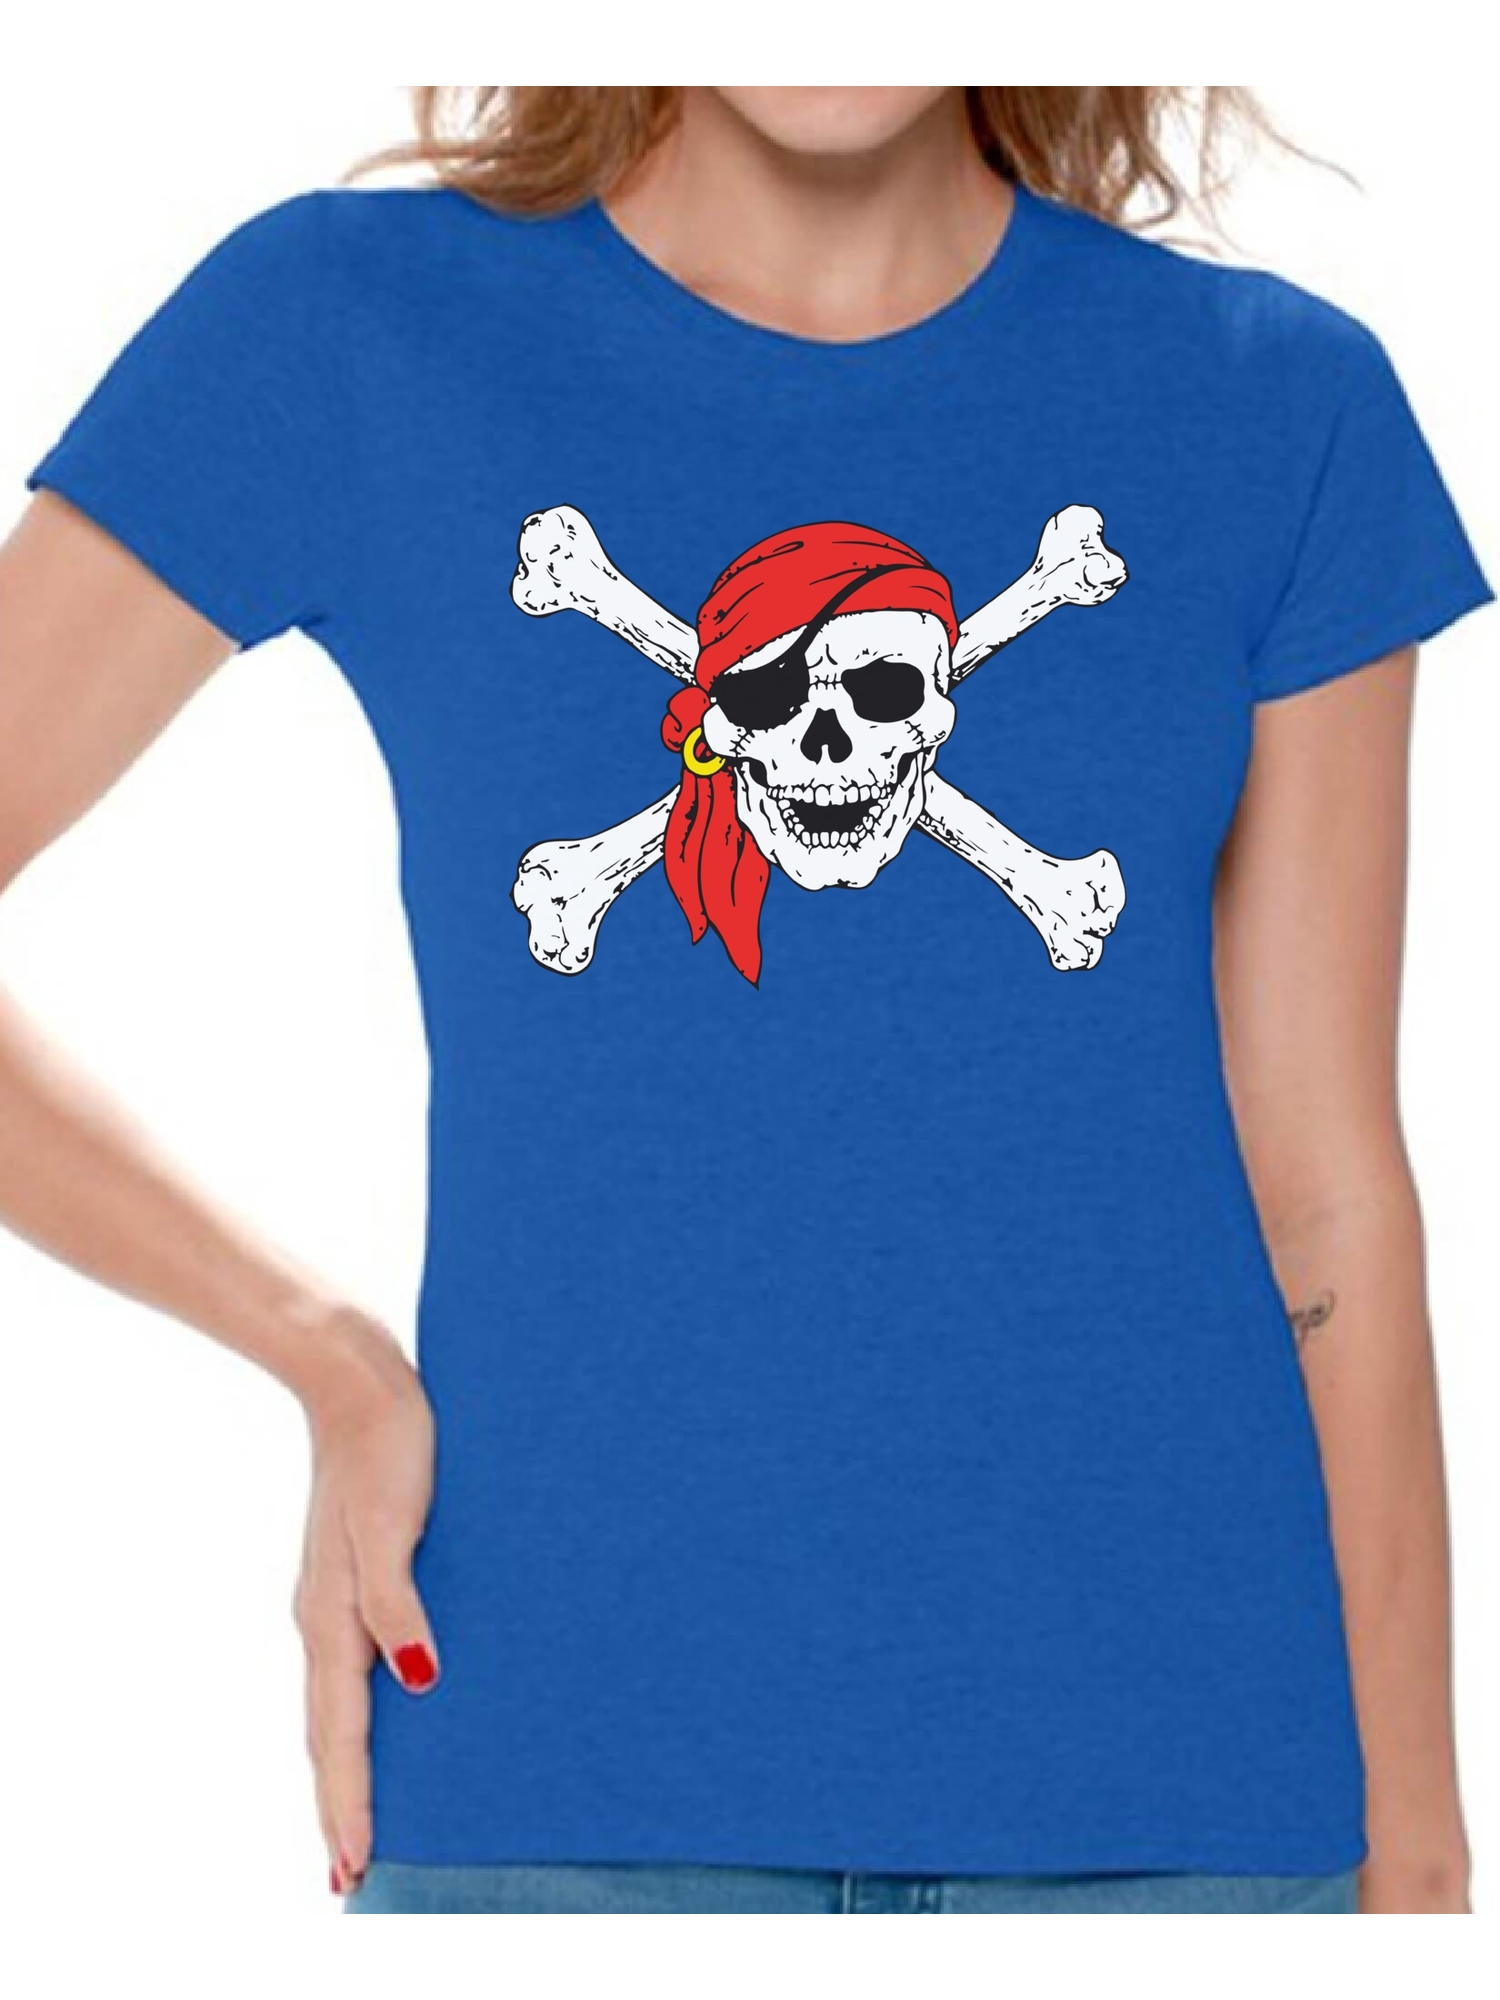 a49d8294 Awkward Styles - Awkward Styles Sugar Skull Shirts for Women Jolly Roger  Skull and Crossbones Women's Tee Shirt Tops Day of Dead Tshirts Pirate Flag  Shirts ...